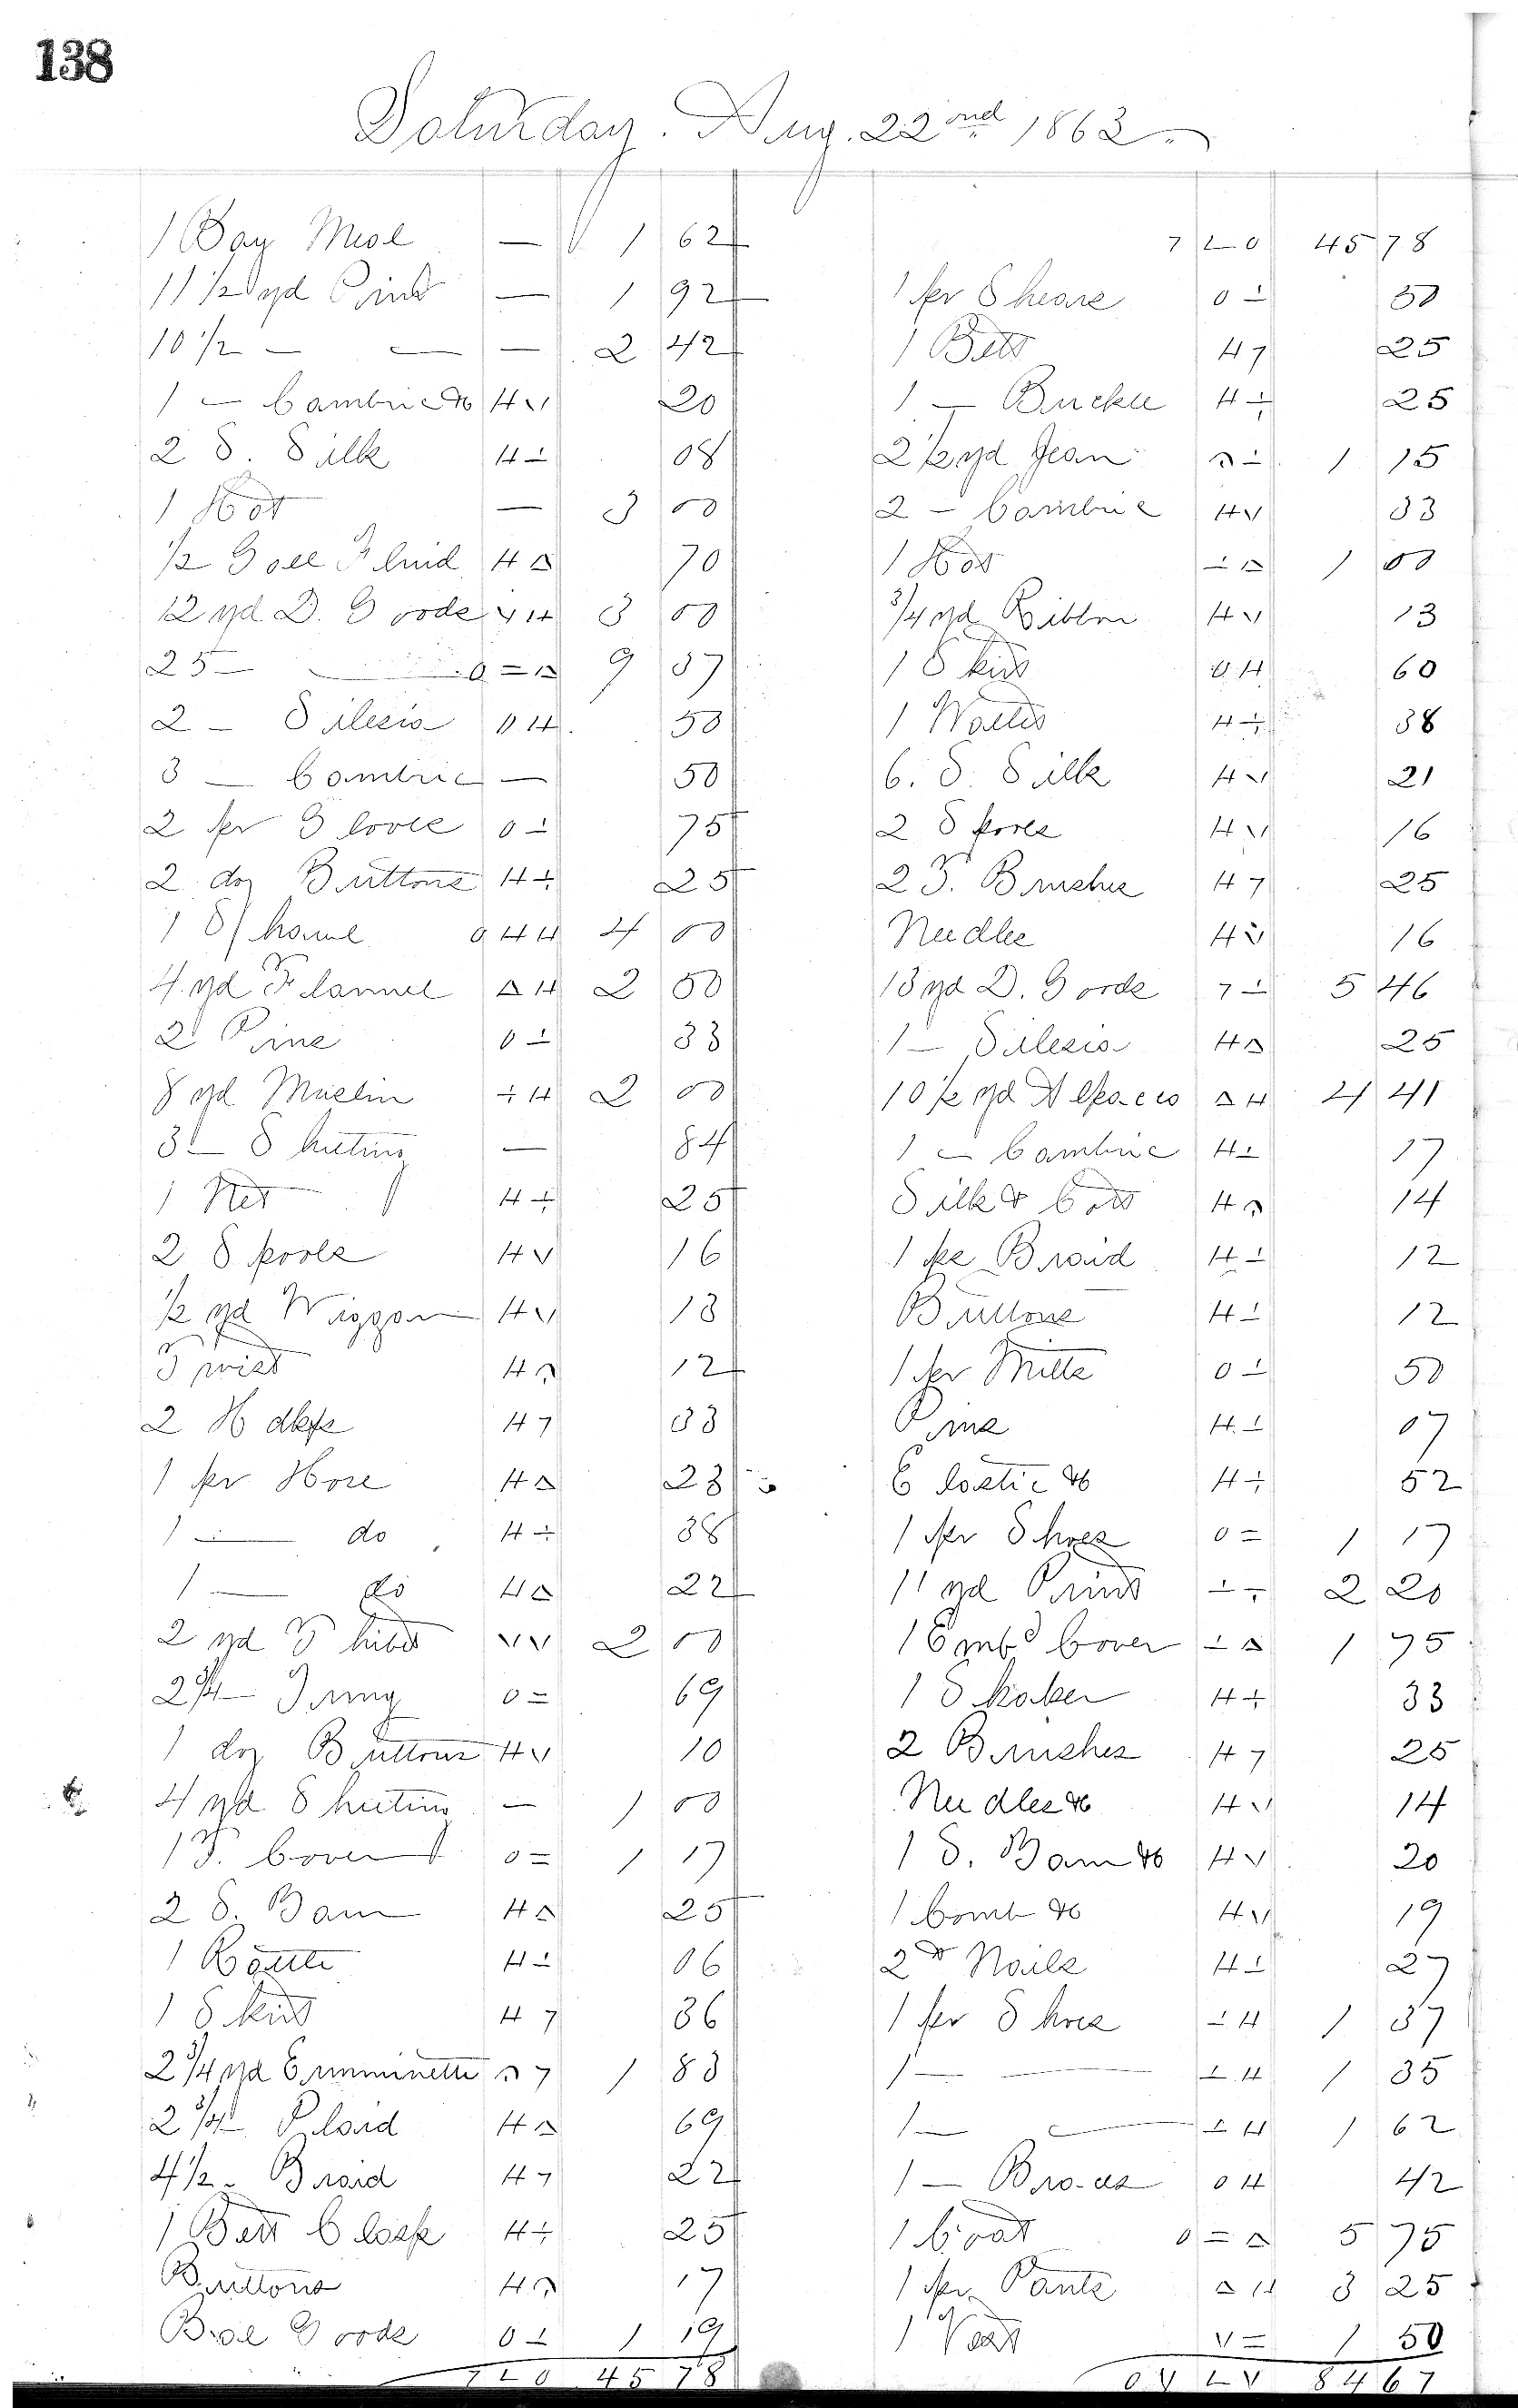 Page 138 from H.K. Keith's 1863 register of daily sales